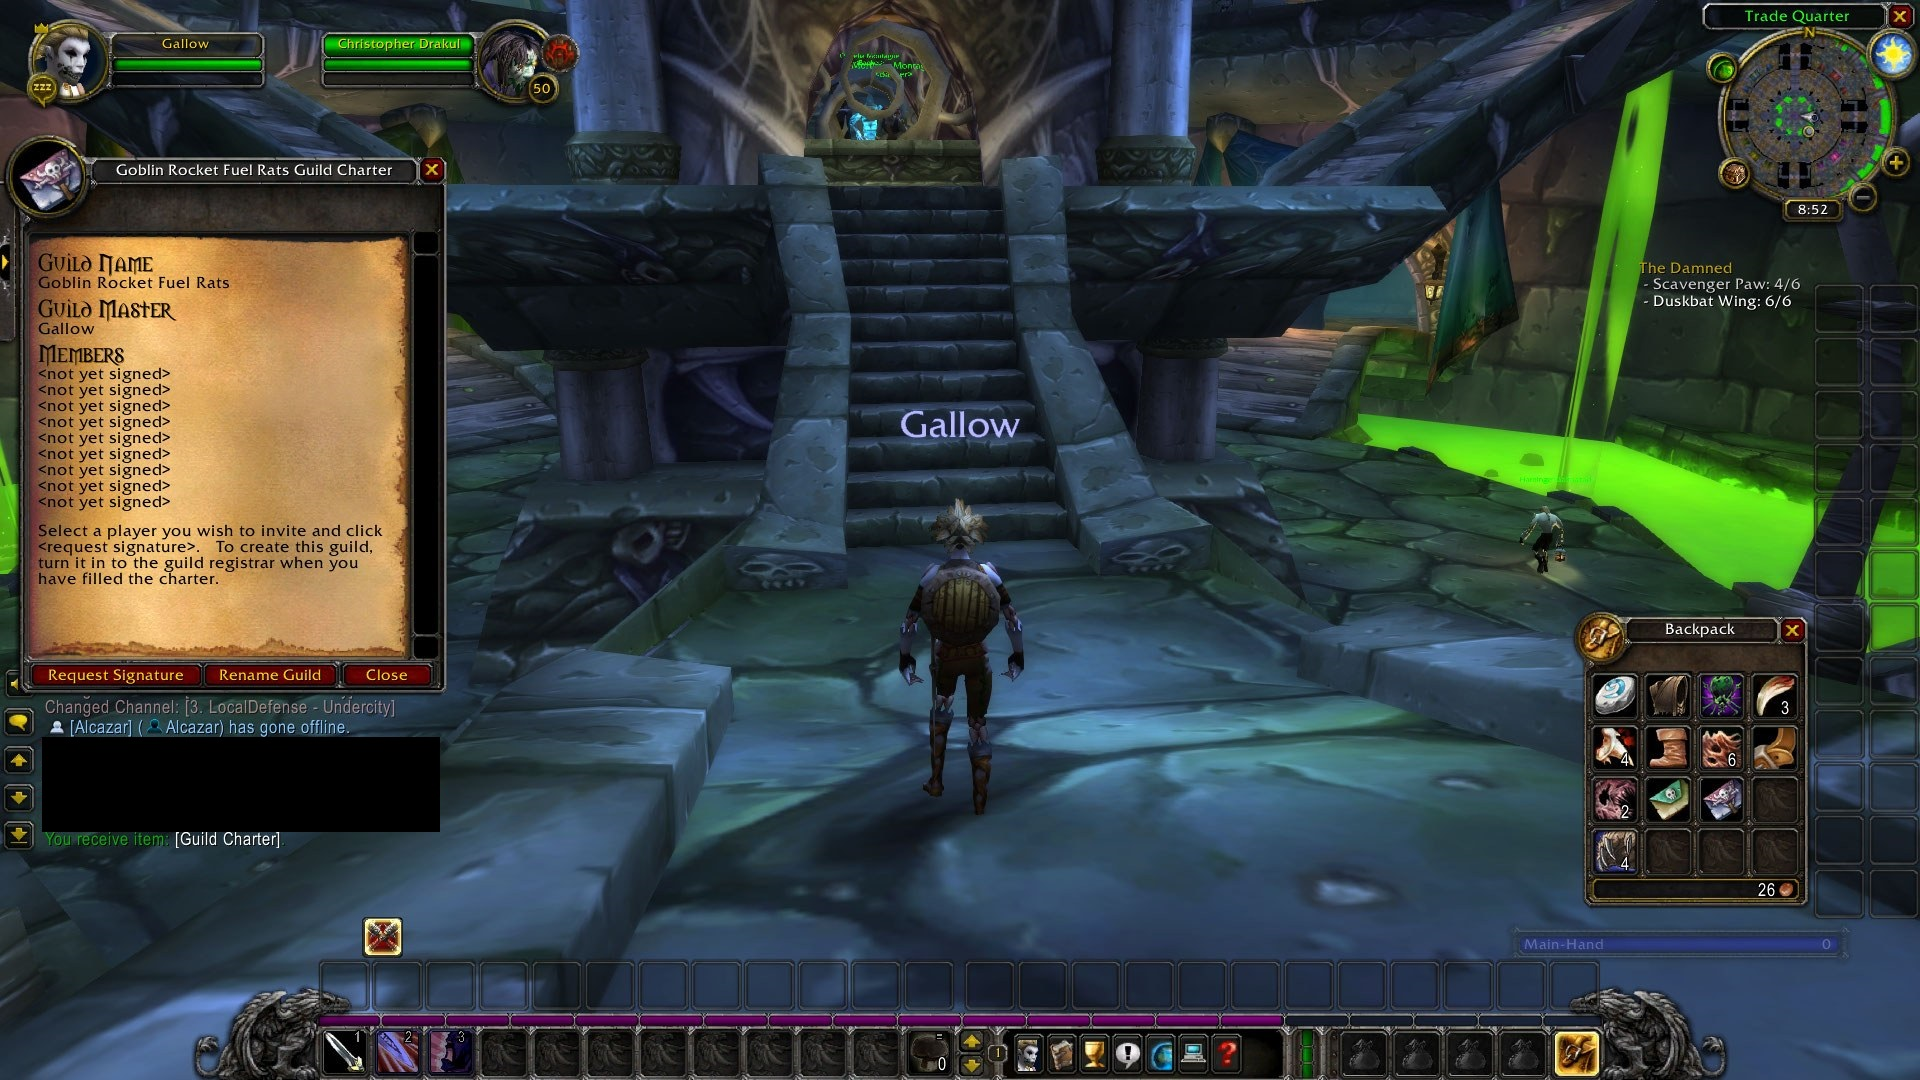 Adventures of Gallow • WoW Classic • Barrens Chat